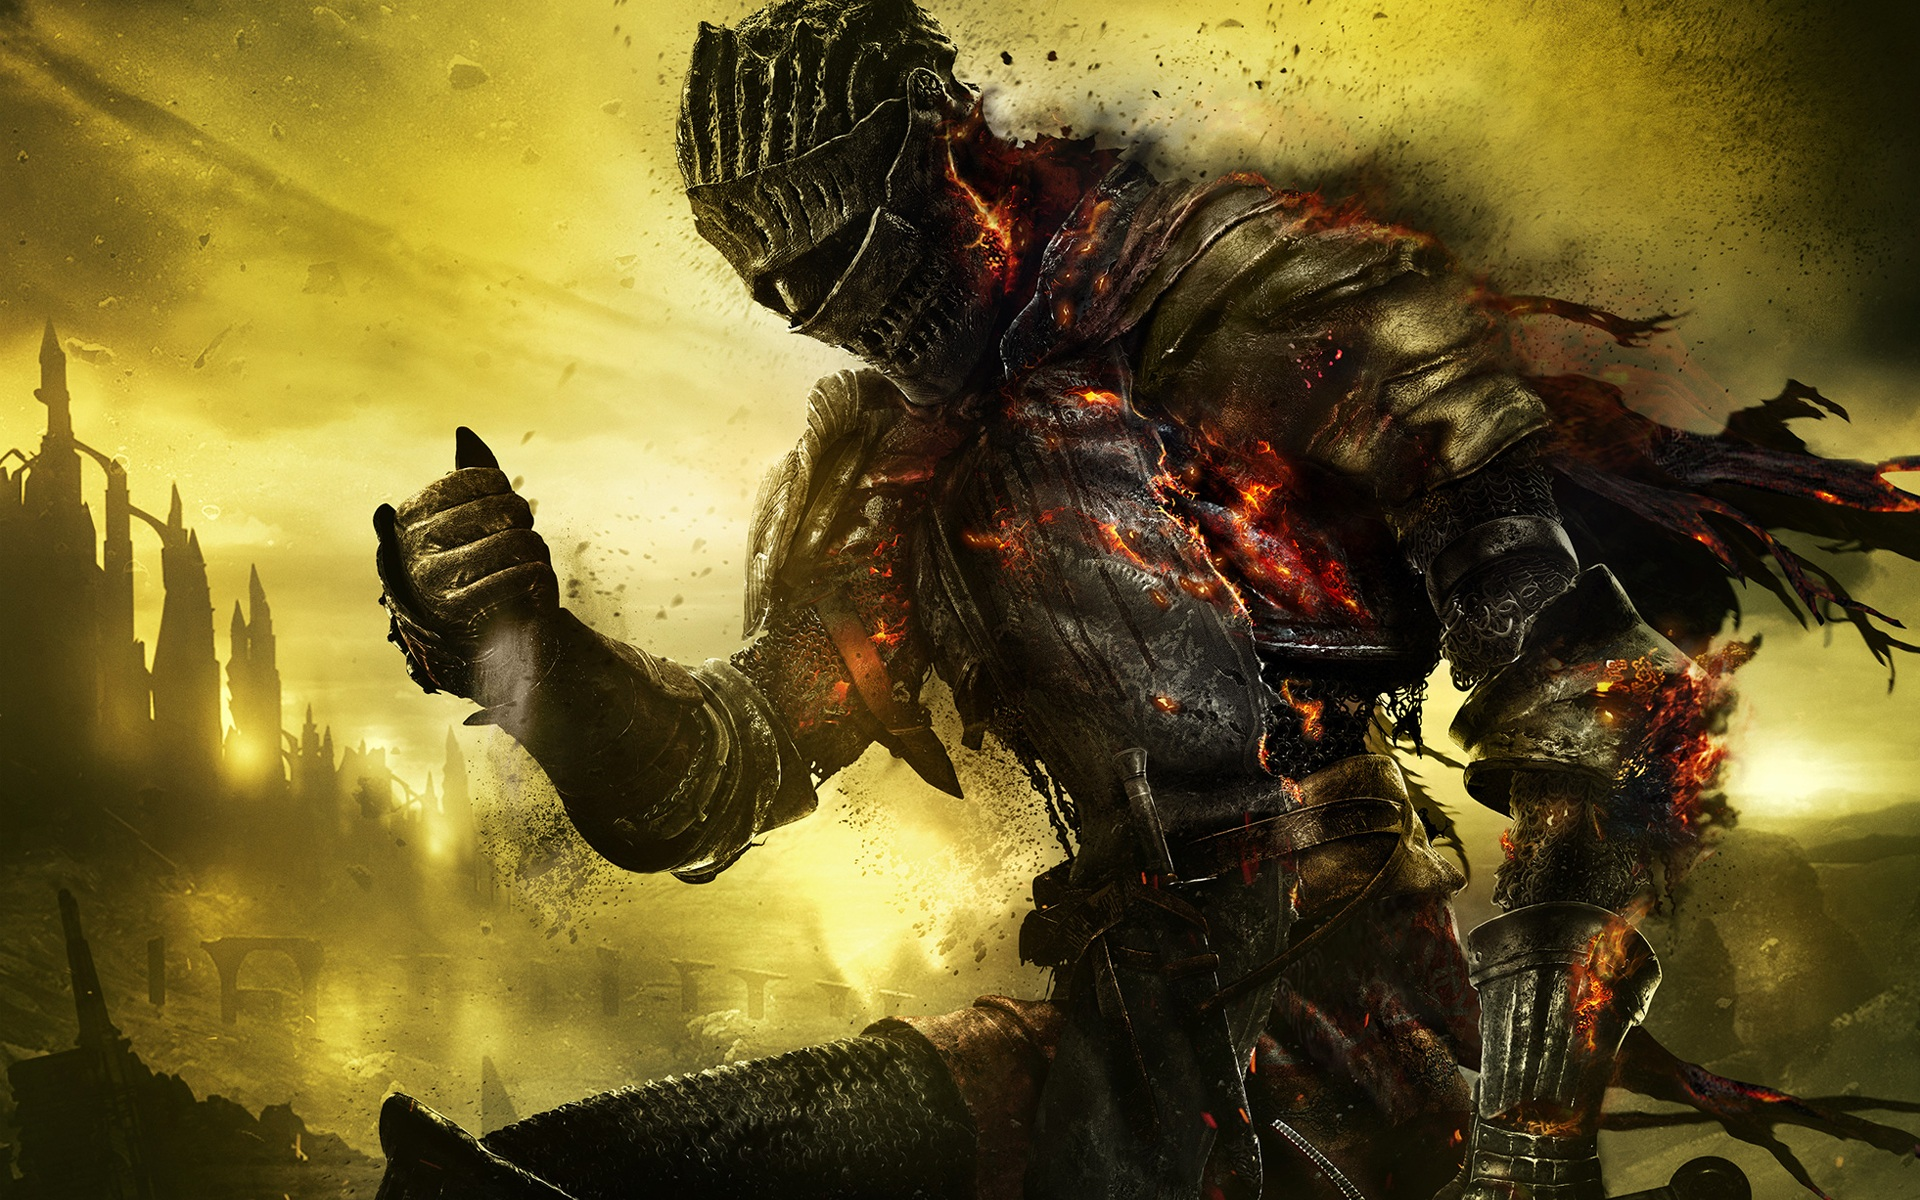 49 Dark Souls 3 Phone Wallpaper On Wallpapersafari